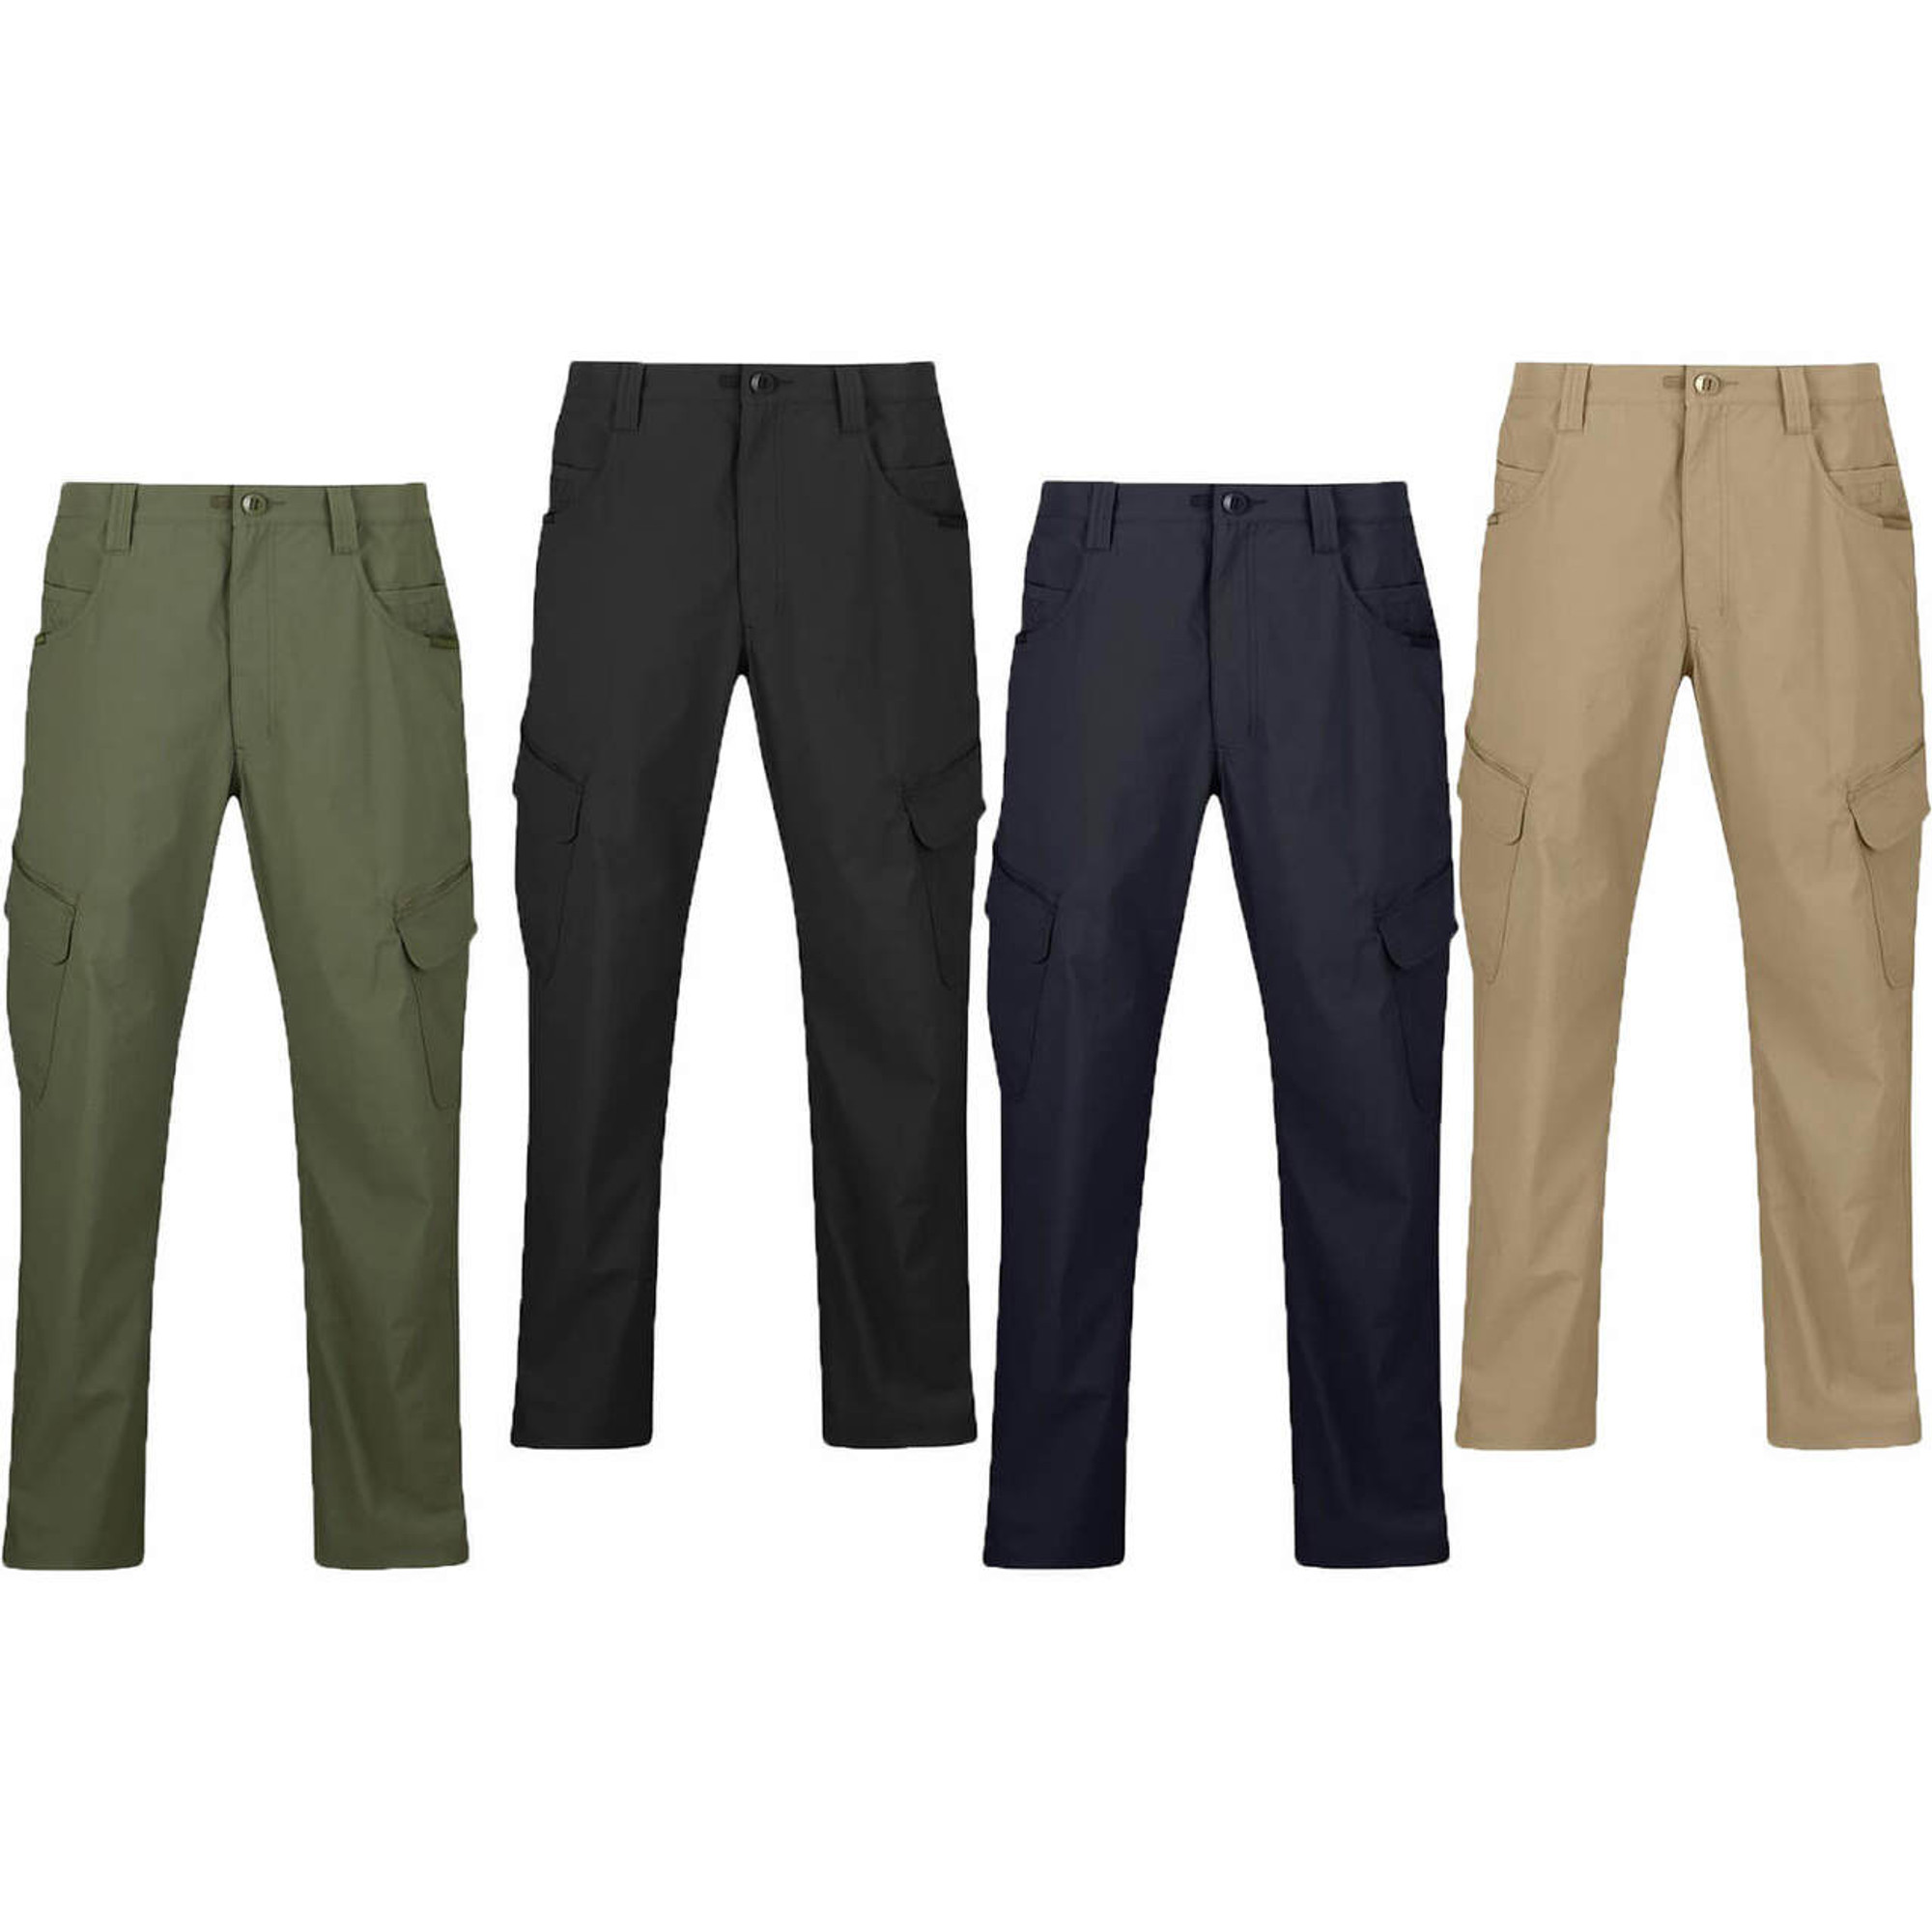 b399e473 Propper Summer Weight Nylon Spandex Lightweight Ripstop Durable Tactical  Pants